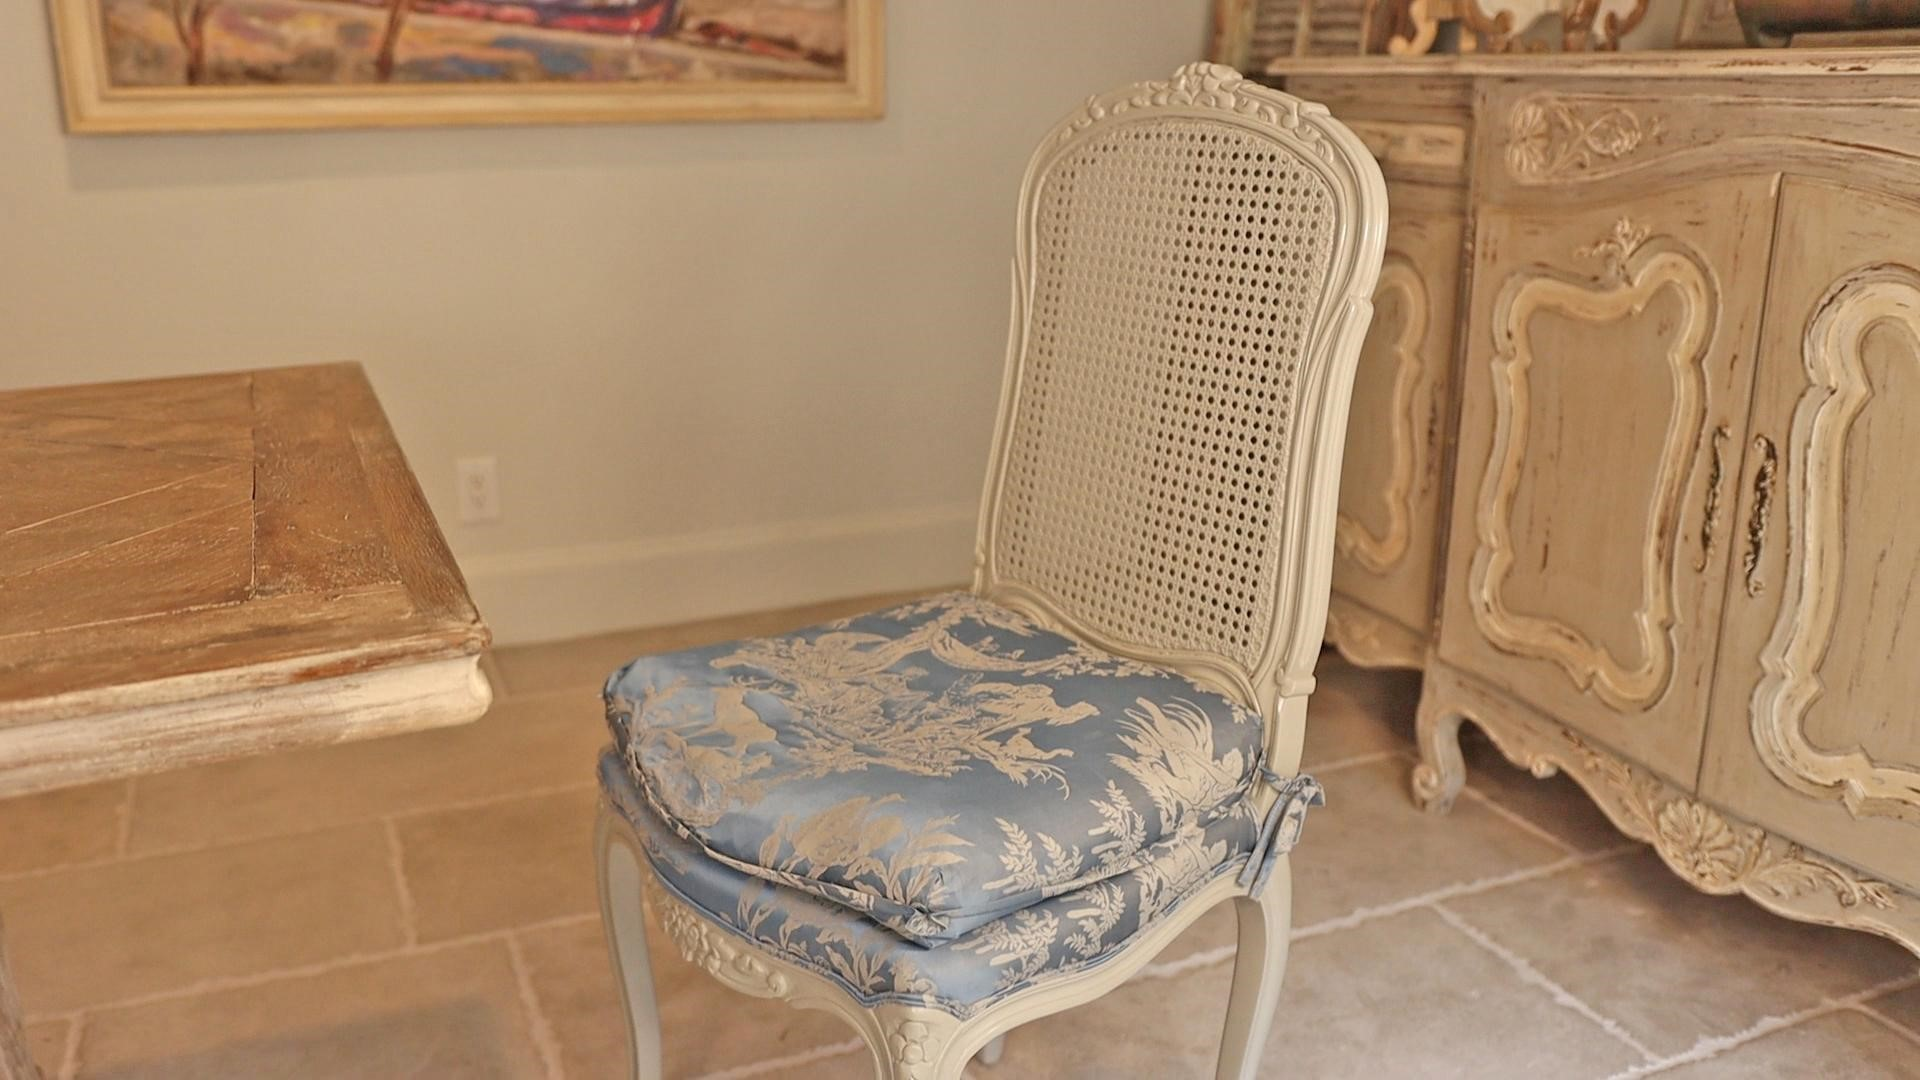 French country-style chairs in white and blue after Amtiha's chalk-finish paint project.